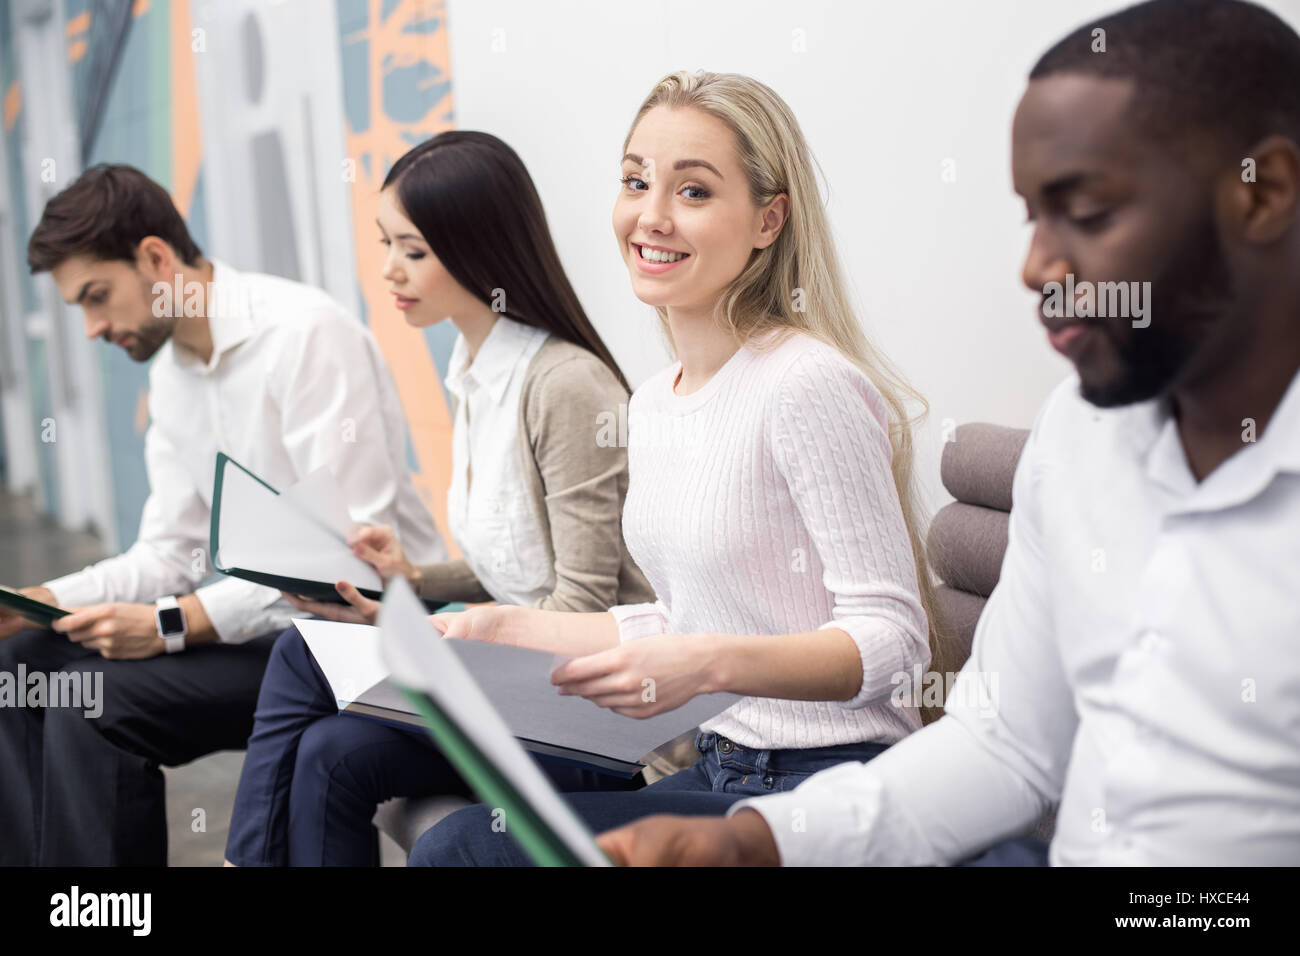 People Waiting for Job Interview Concept Stock Photo